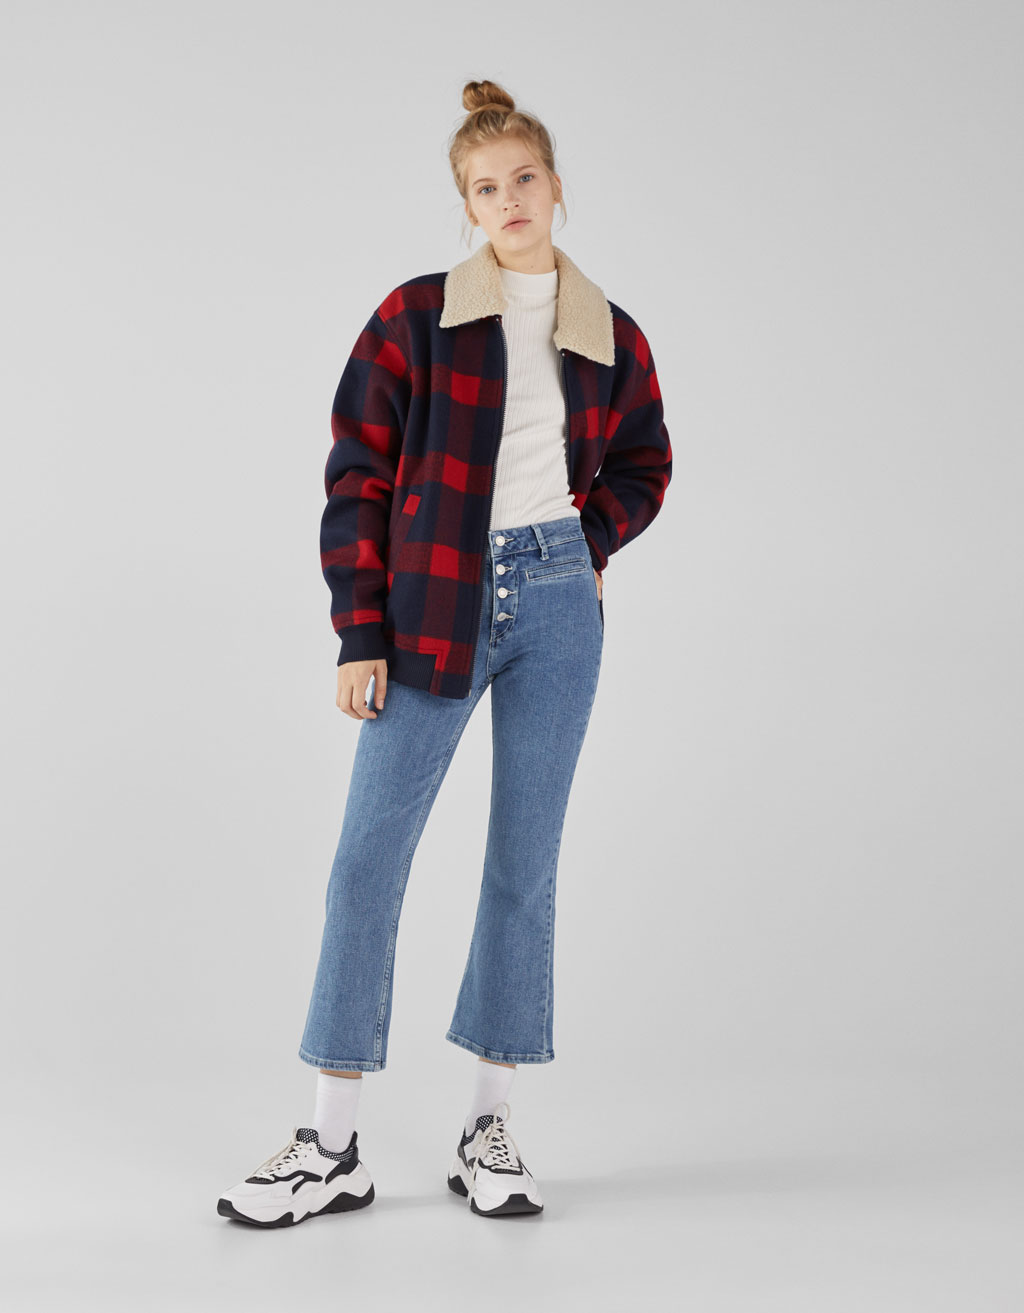 Kick flare high rise jeans with buttons